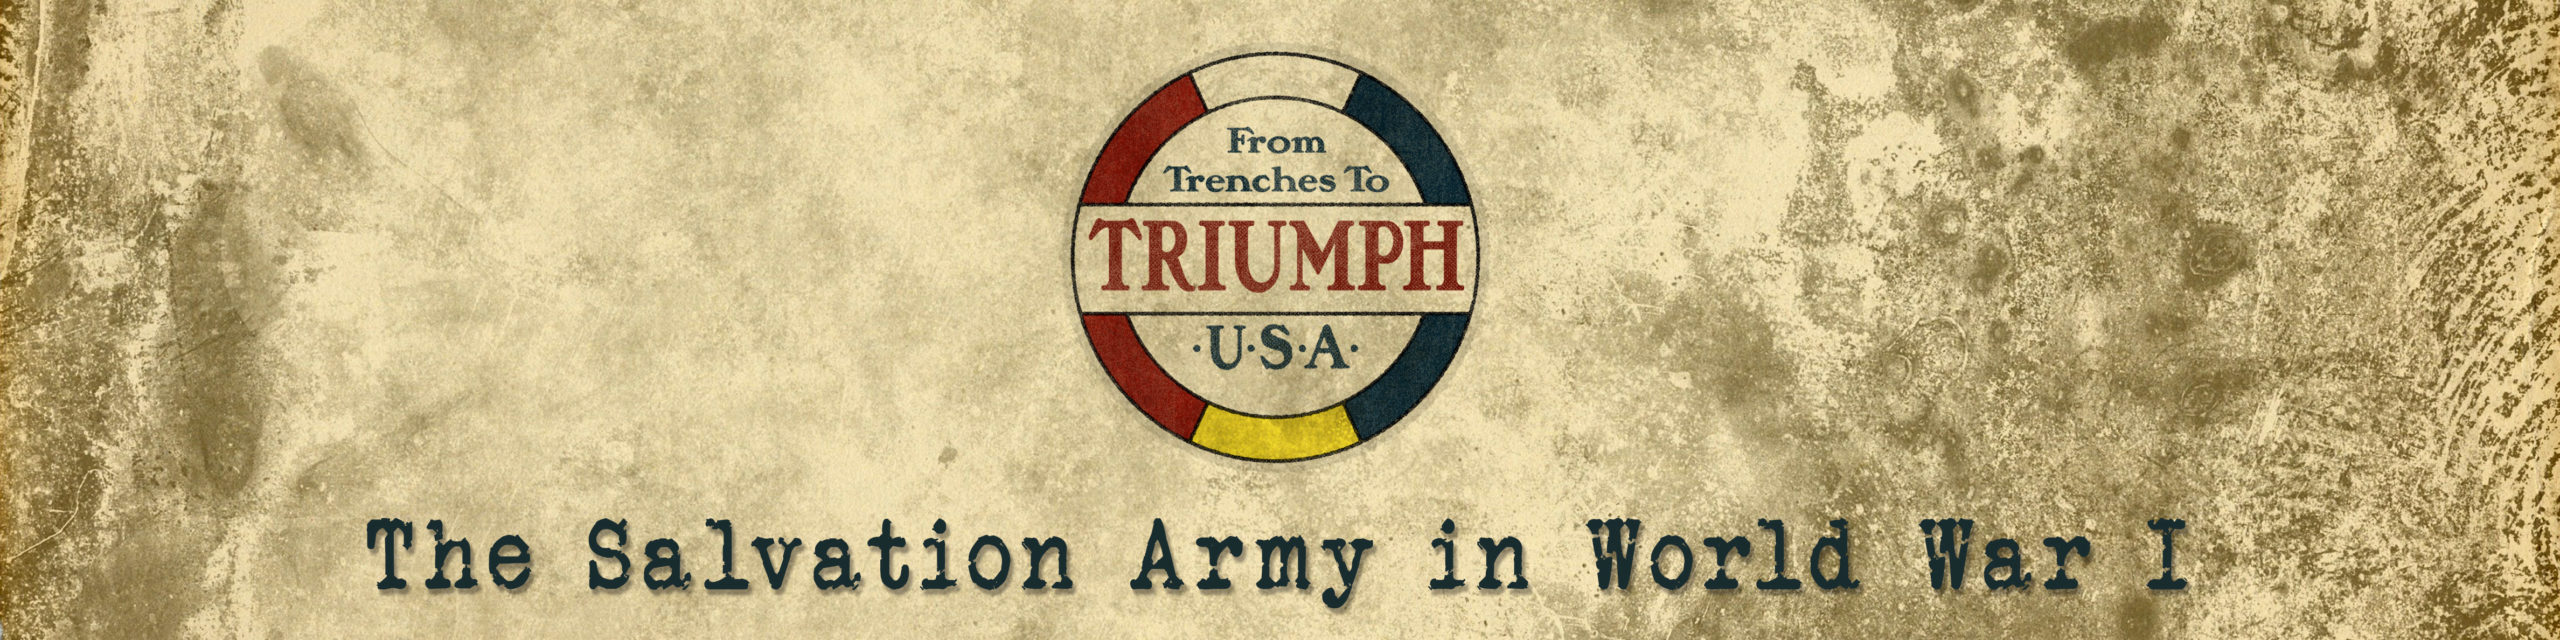 """Page title showing a yellowed grungy background with a logo which reads """"From Trenches to Triumph U.S.A."""" The logo is circular in shape with a red, white and blue upper border and a red, yellow and blue lower border. Below the logo is text in navy blue which reads """"The Salvation Army in World War I"""""""